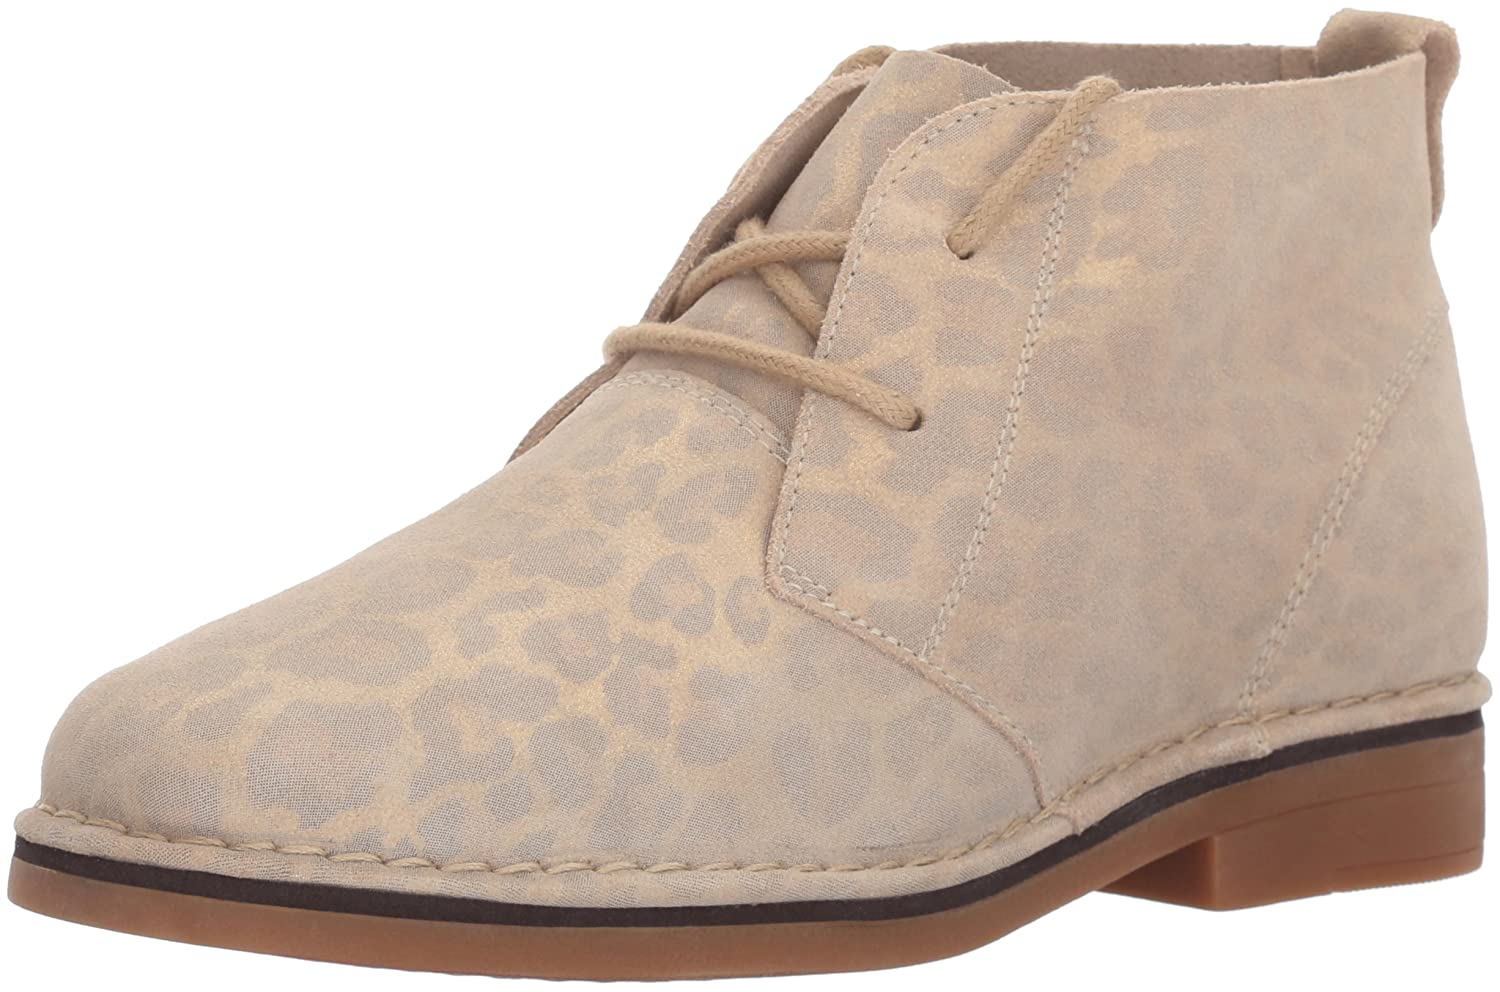 Hush Puppies Women's Cyra Catelyn Ankle Bootie B01N4TI46D 5.5 B(M) US|Natural Leopard Suede